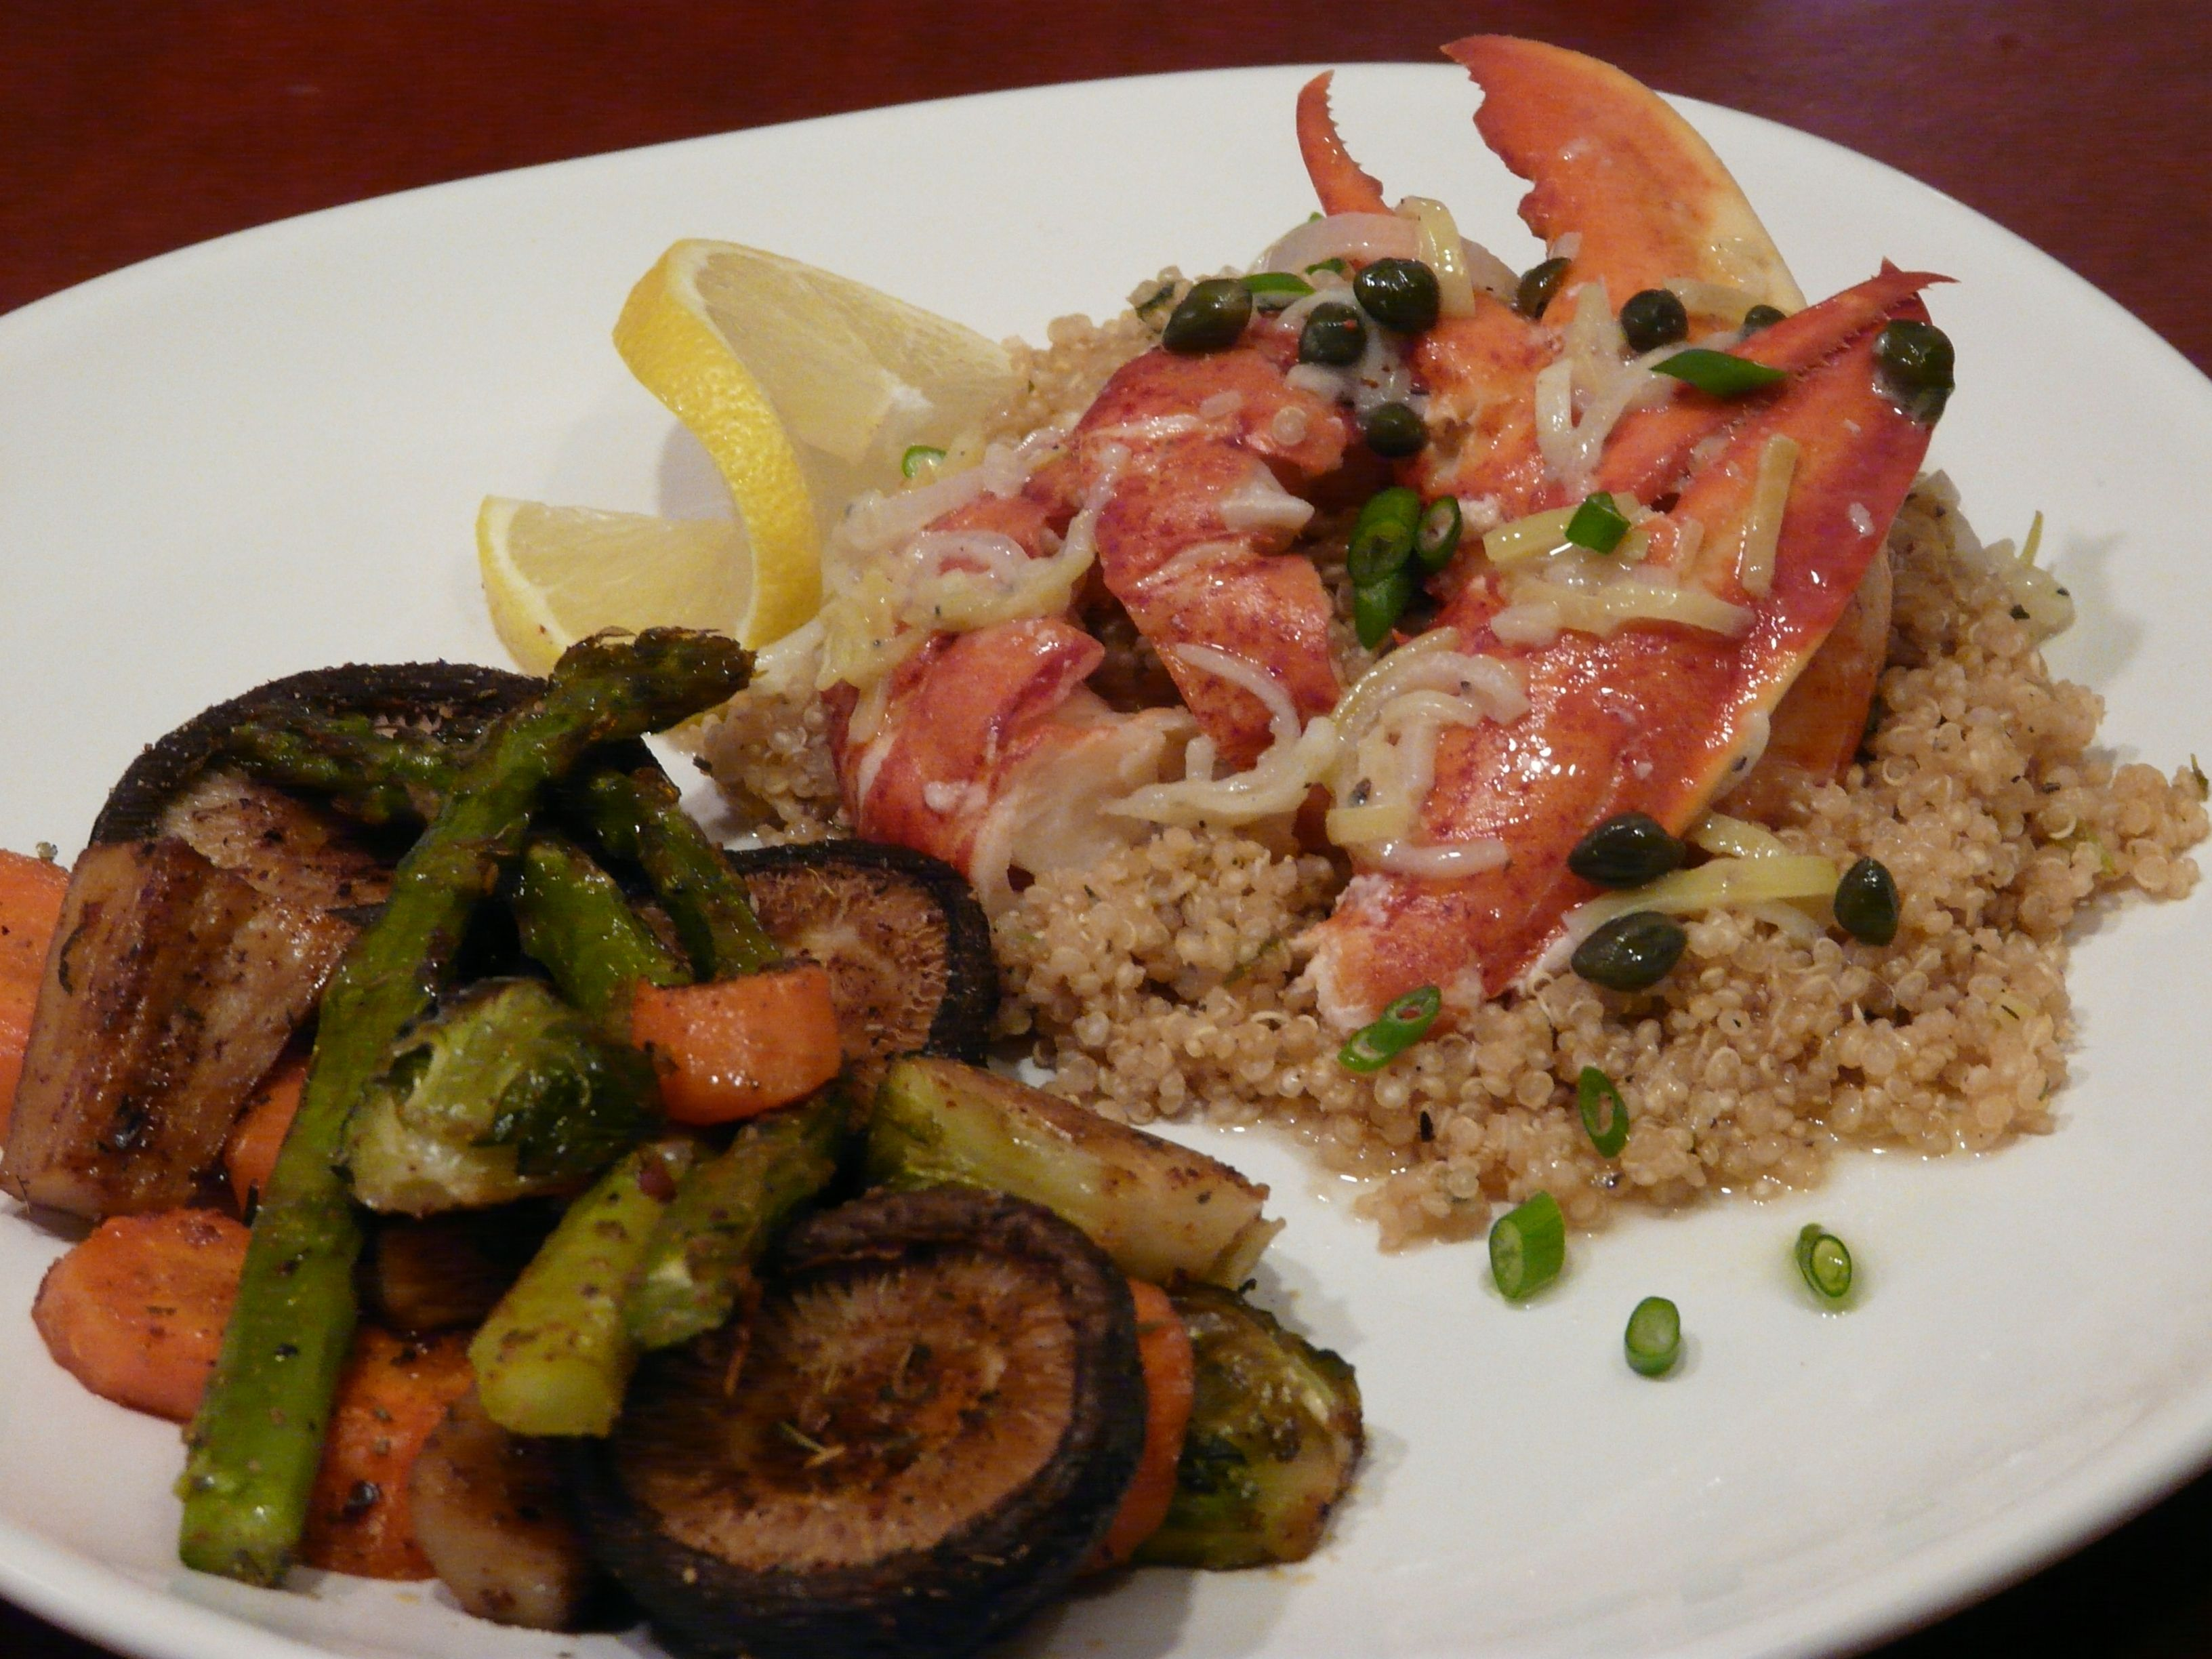 Succulent lobster served over lemon scented quinoa and drizzled with lemon, shallot and caper butter, & accompanied by oven roasted vegetables.